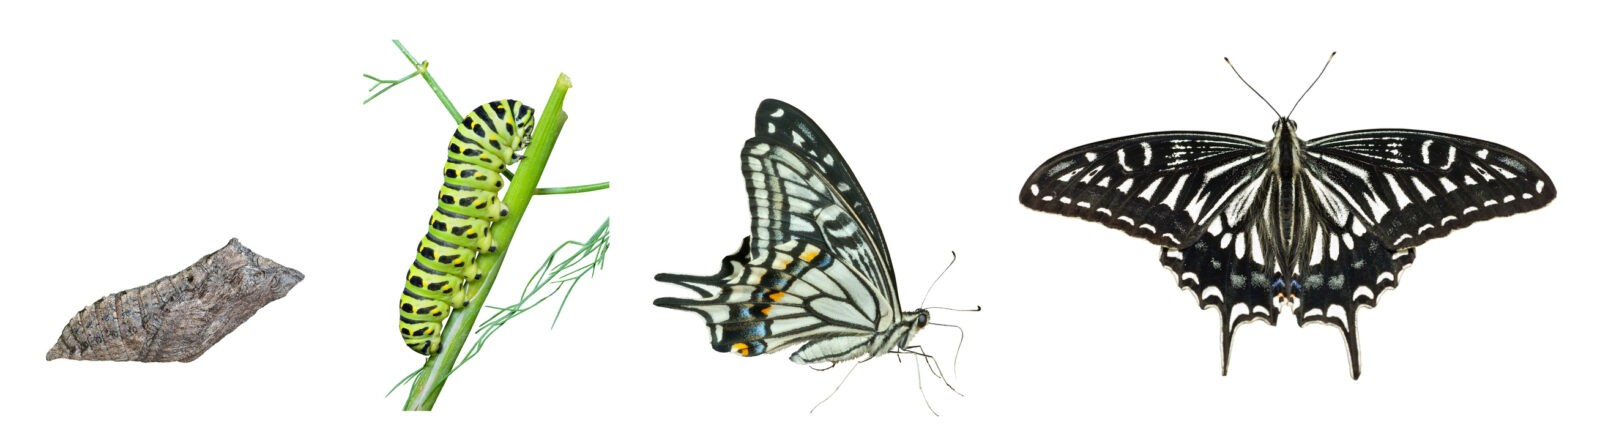 The stages of development butterfly (Papilio xuthus). Isolated on white.